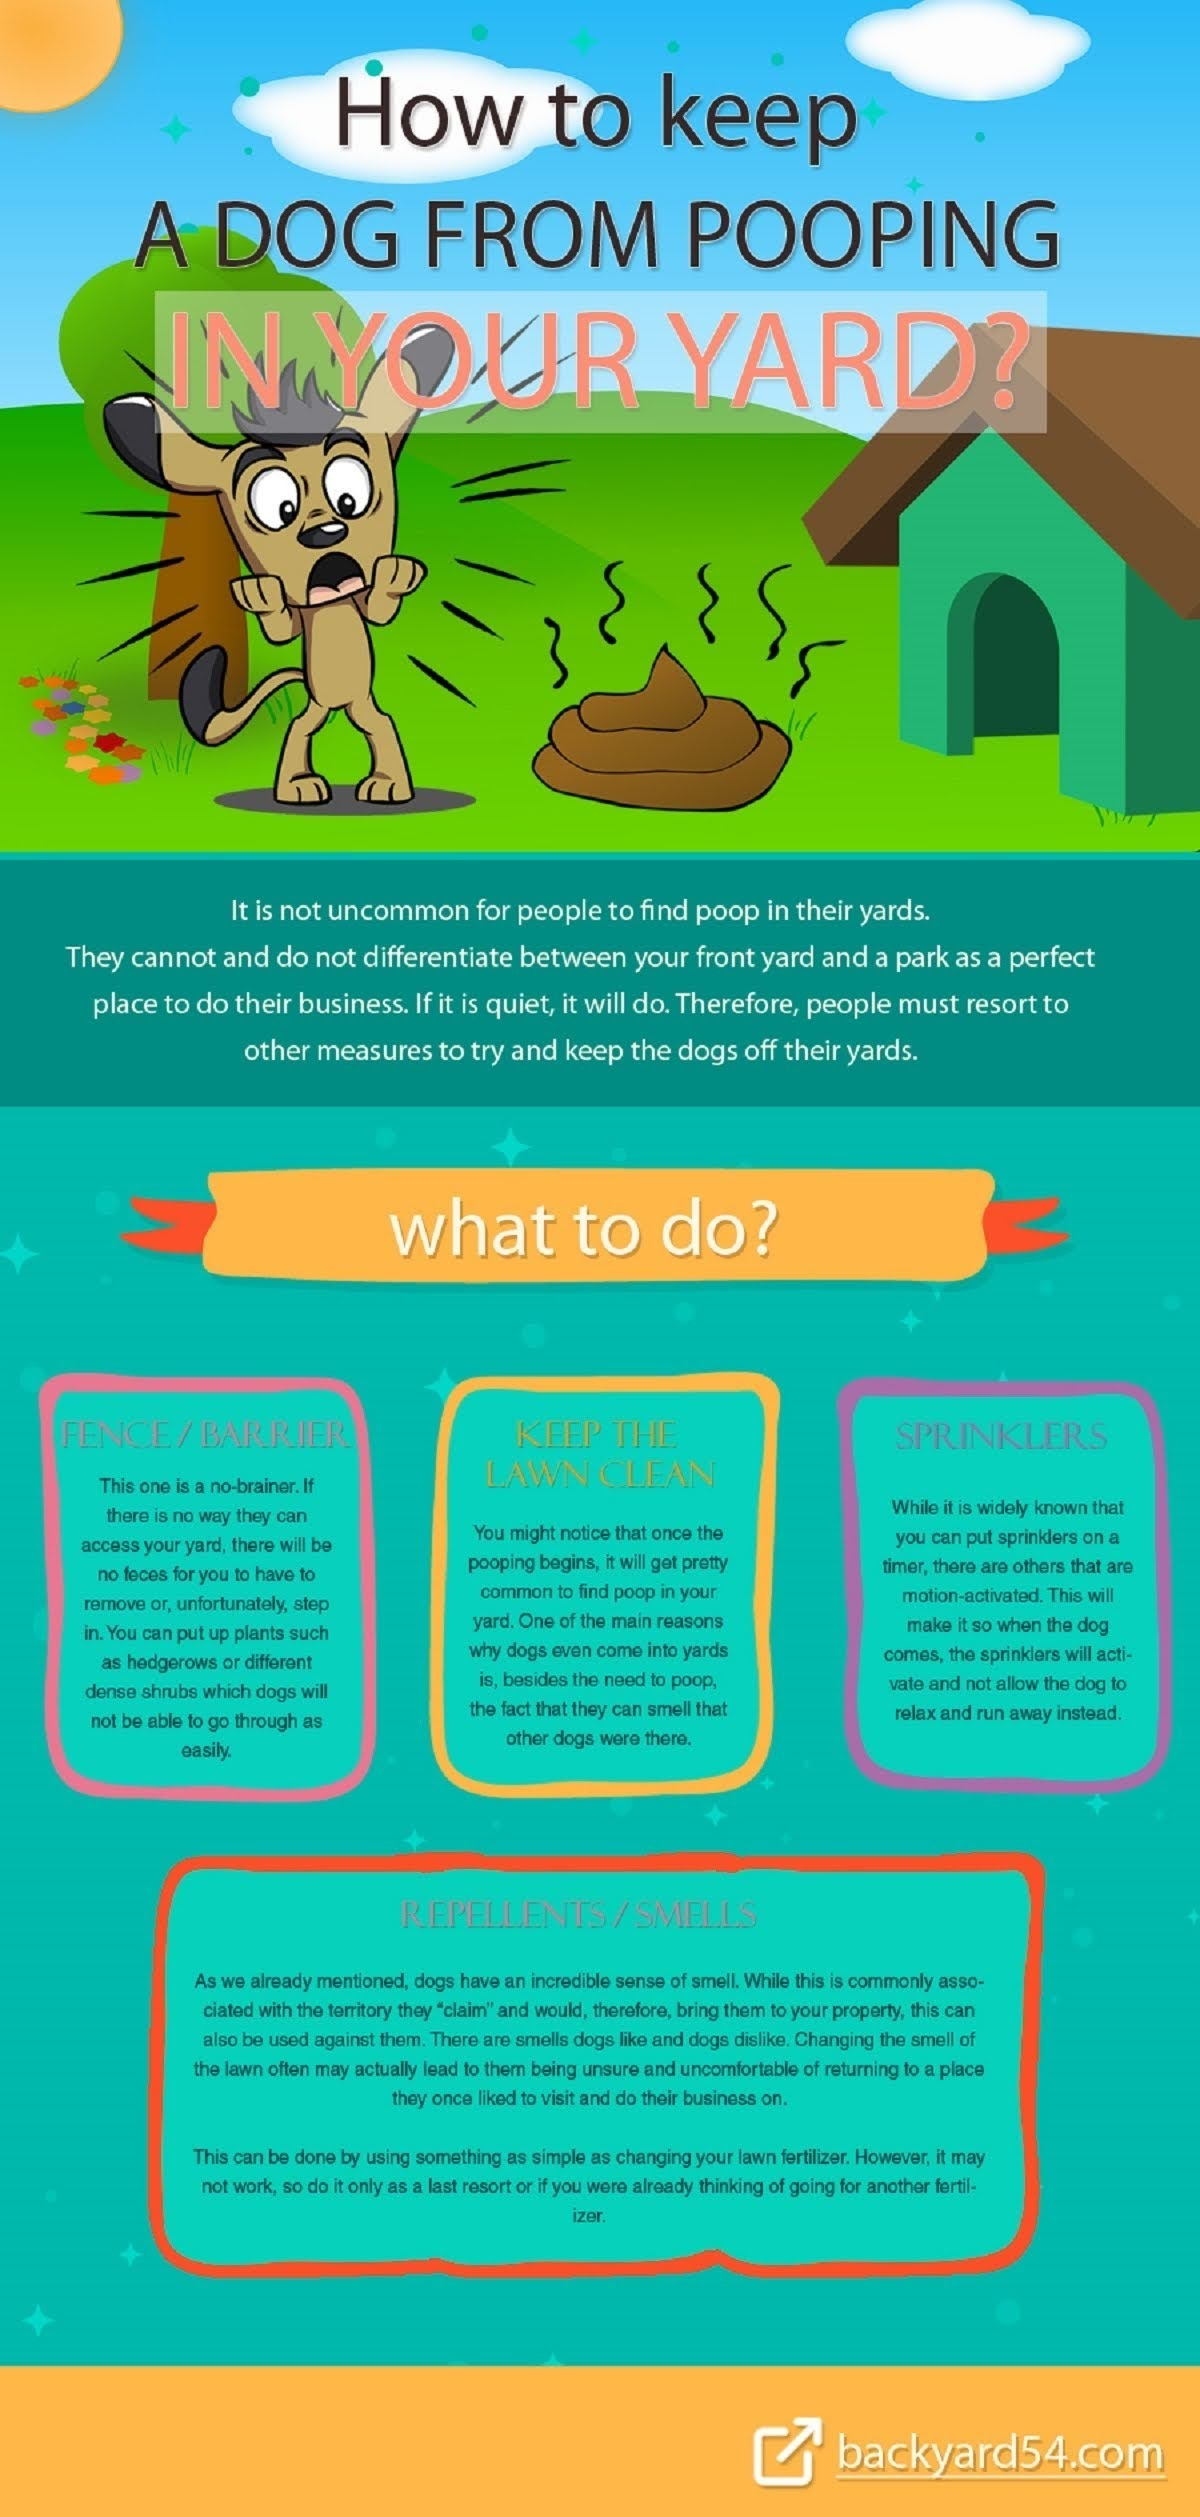 How to keep a dog from pooping in your yard? #infographic